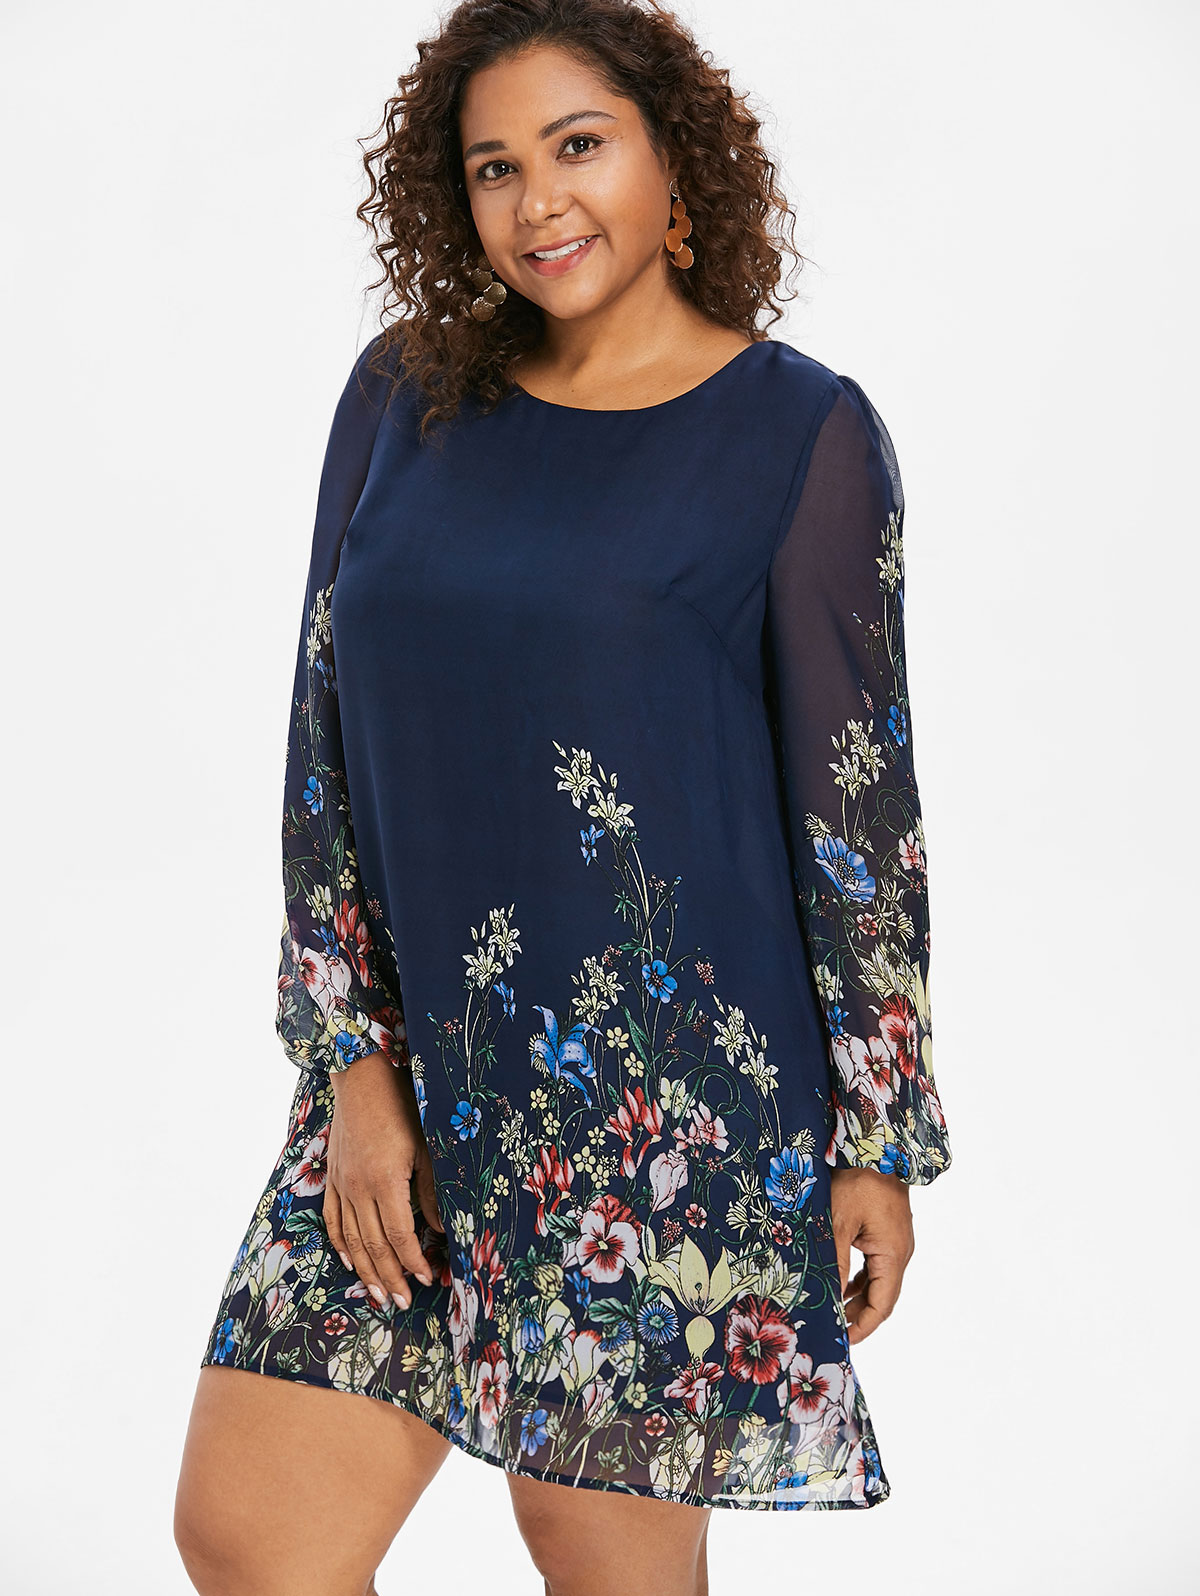 US $10.59 54% OFF|Wipalo Navy Blue Plus Size Floral Embroidery Tunic Dress  Spring Summer Elegant Large Sizes Tribal Flower Print Vocation Dress-in ...